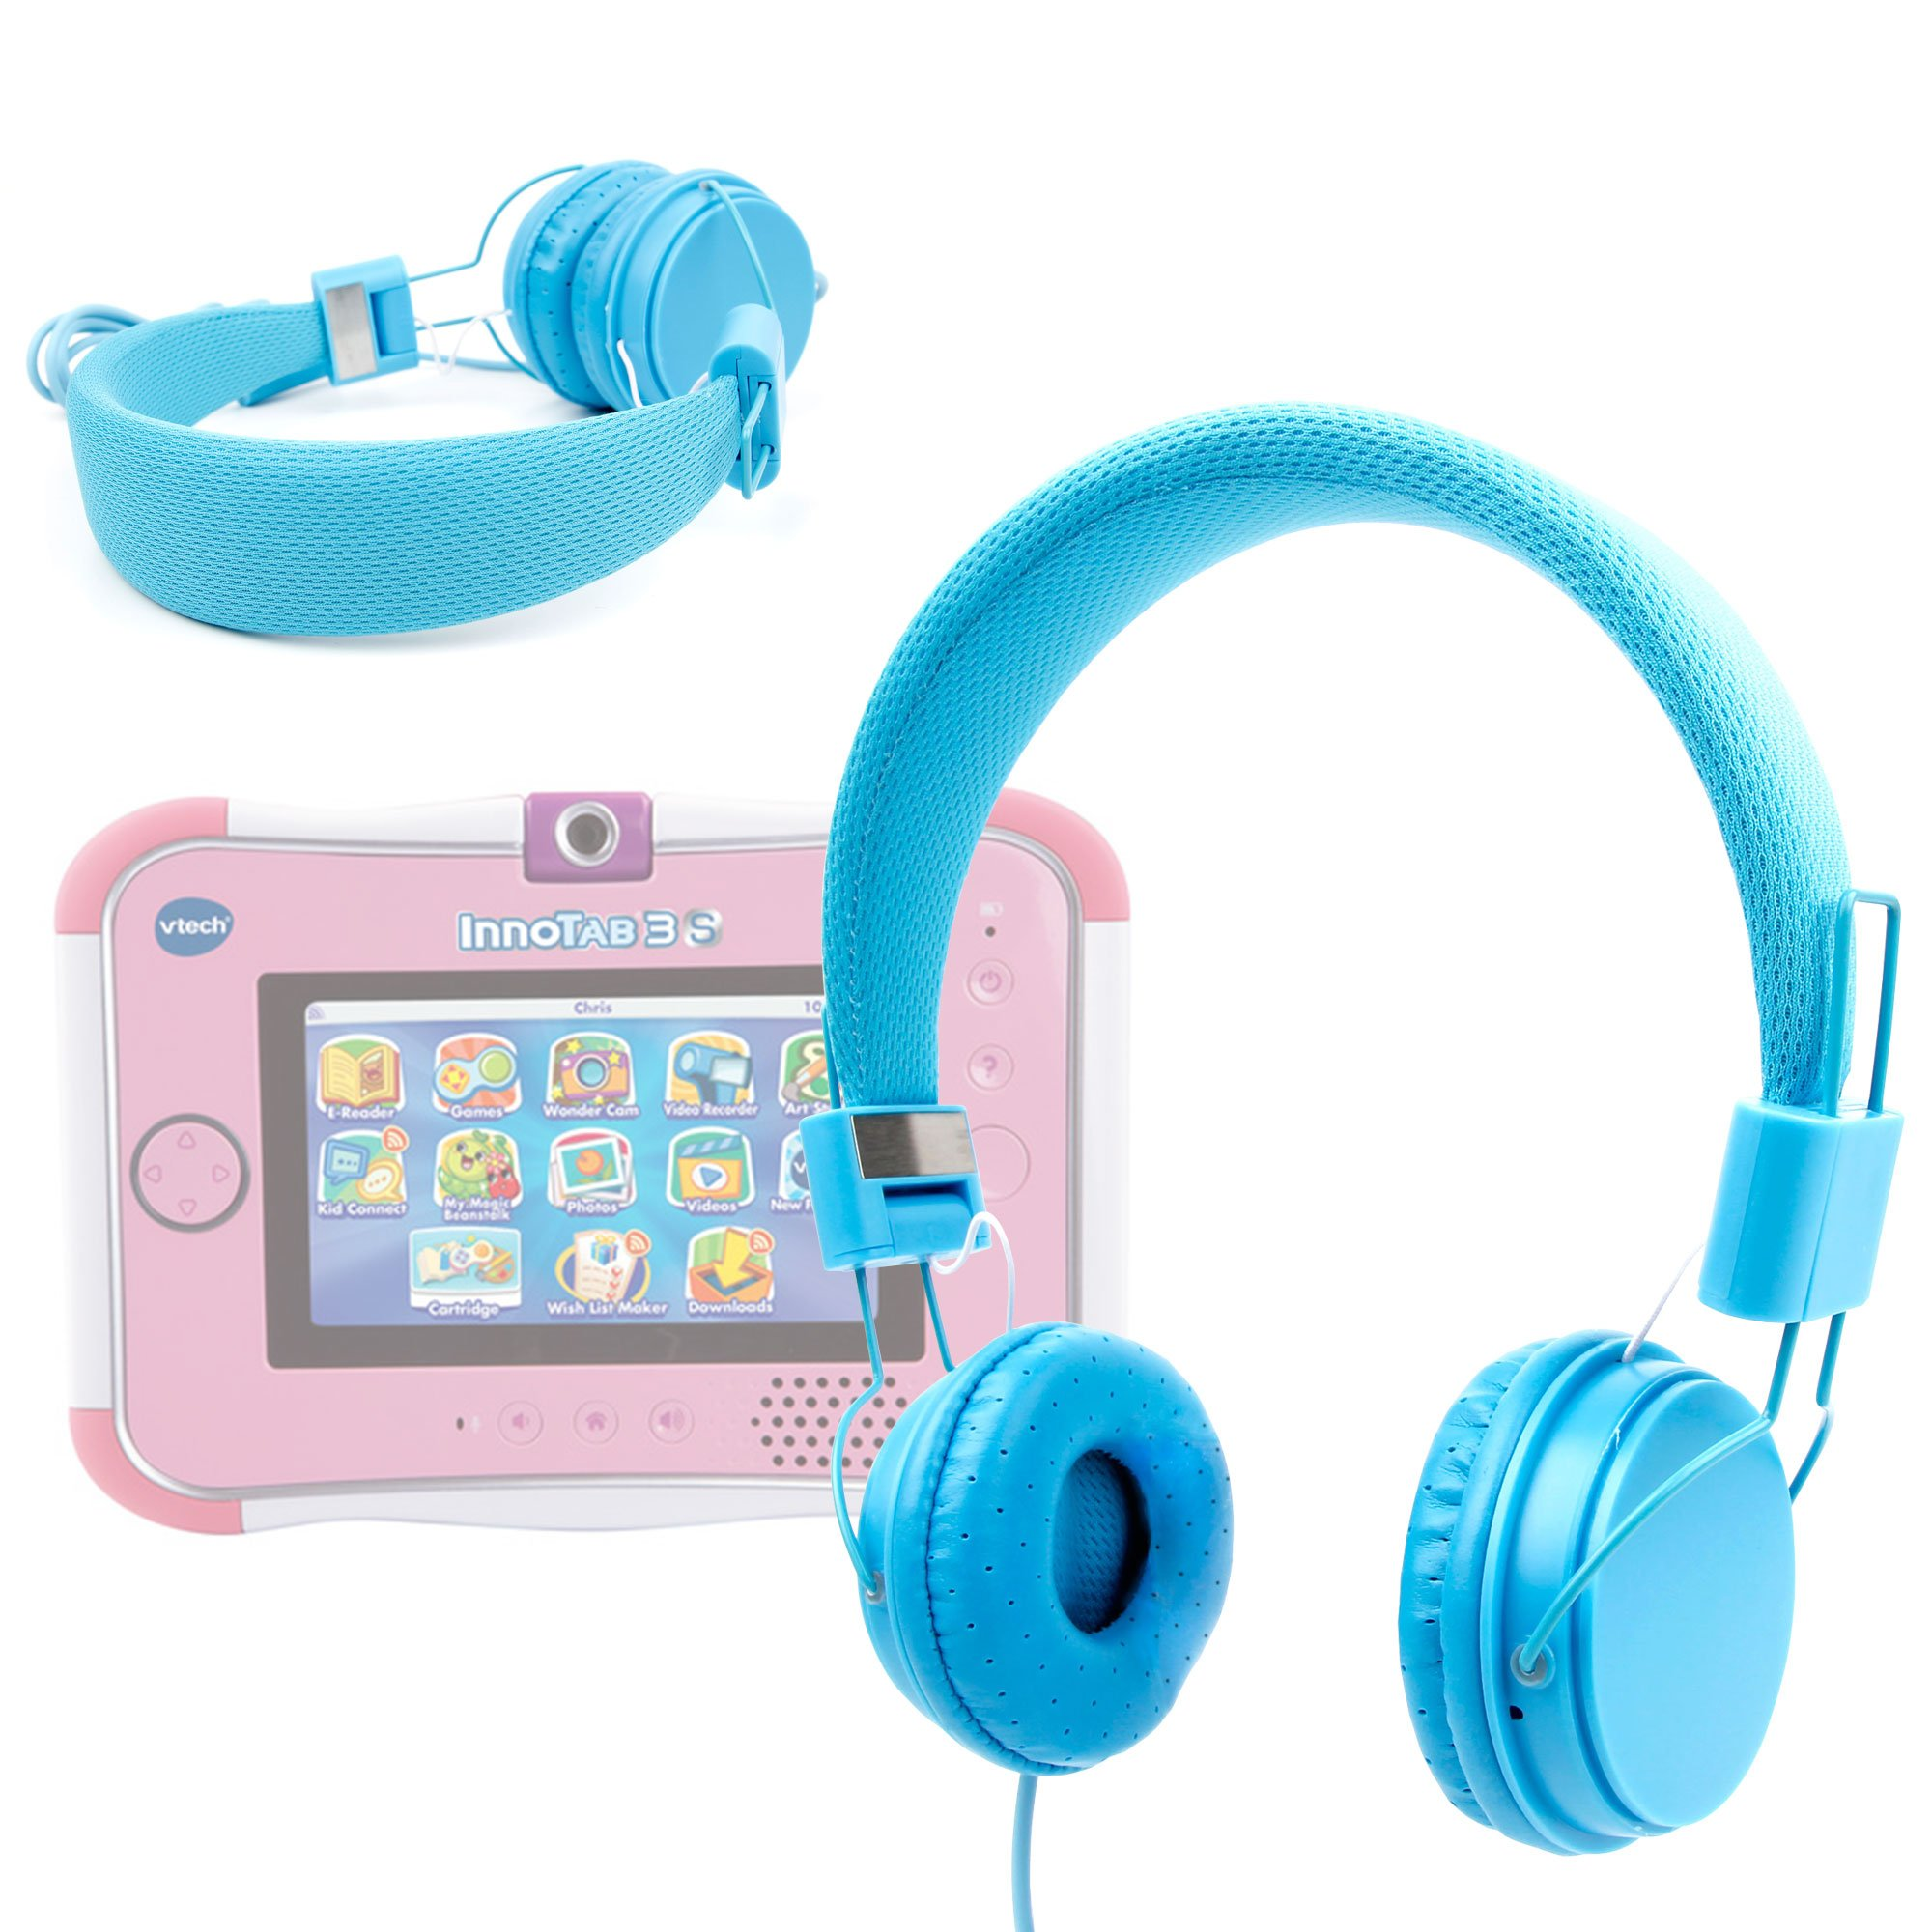 DURAGADGET Blue Ultra-Stylish Kids Fashion Headphones with Padded Design, Button Remote and Microphone Compatible with VTech Innotab 3, VTech Innotab 3S by DURAGADGET (Image #1)